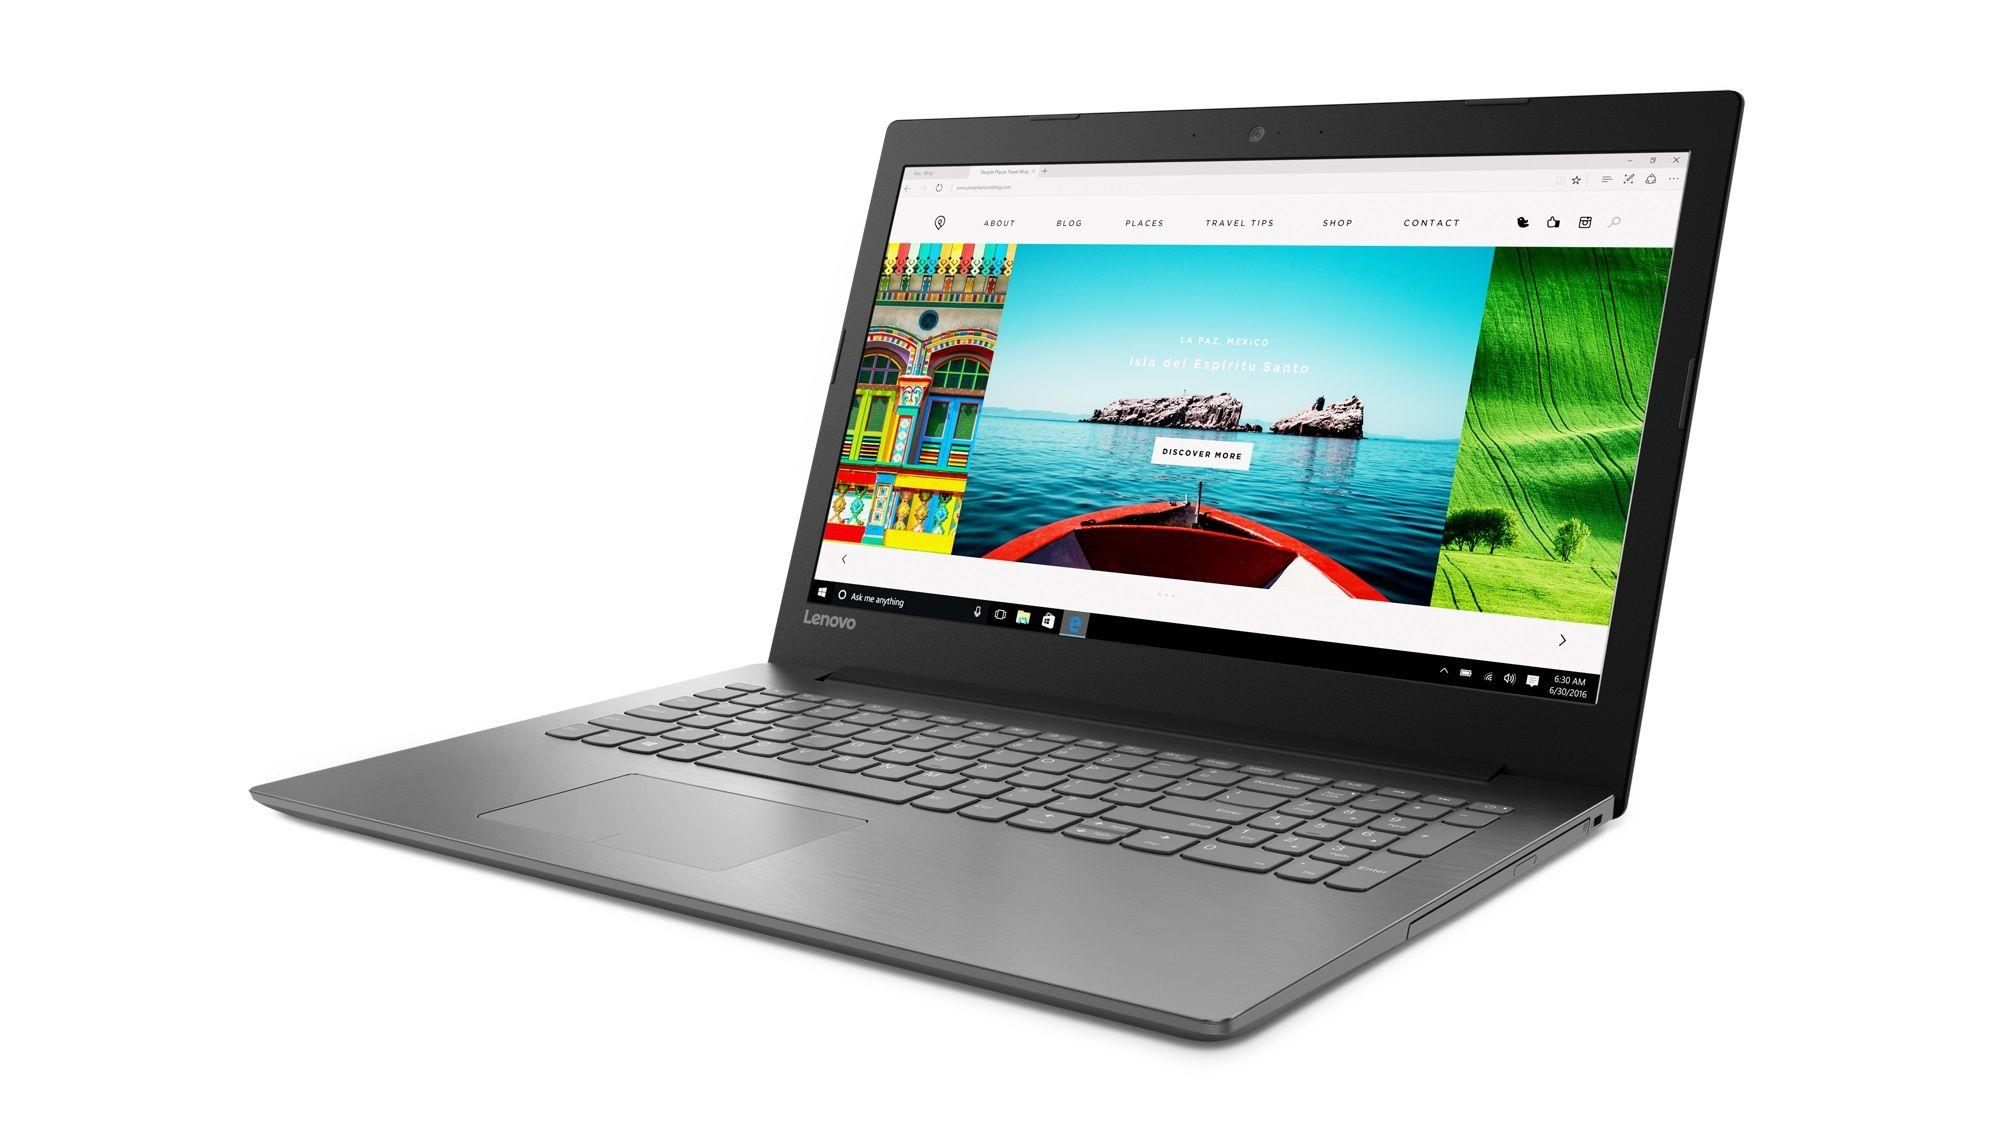 Notebook Lenovo IdeaPad 320-15IKBN 15,6 cal FHD i5-7200U 8GB 1TB GT940MX-2GB W10 Black